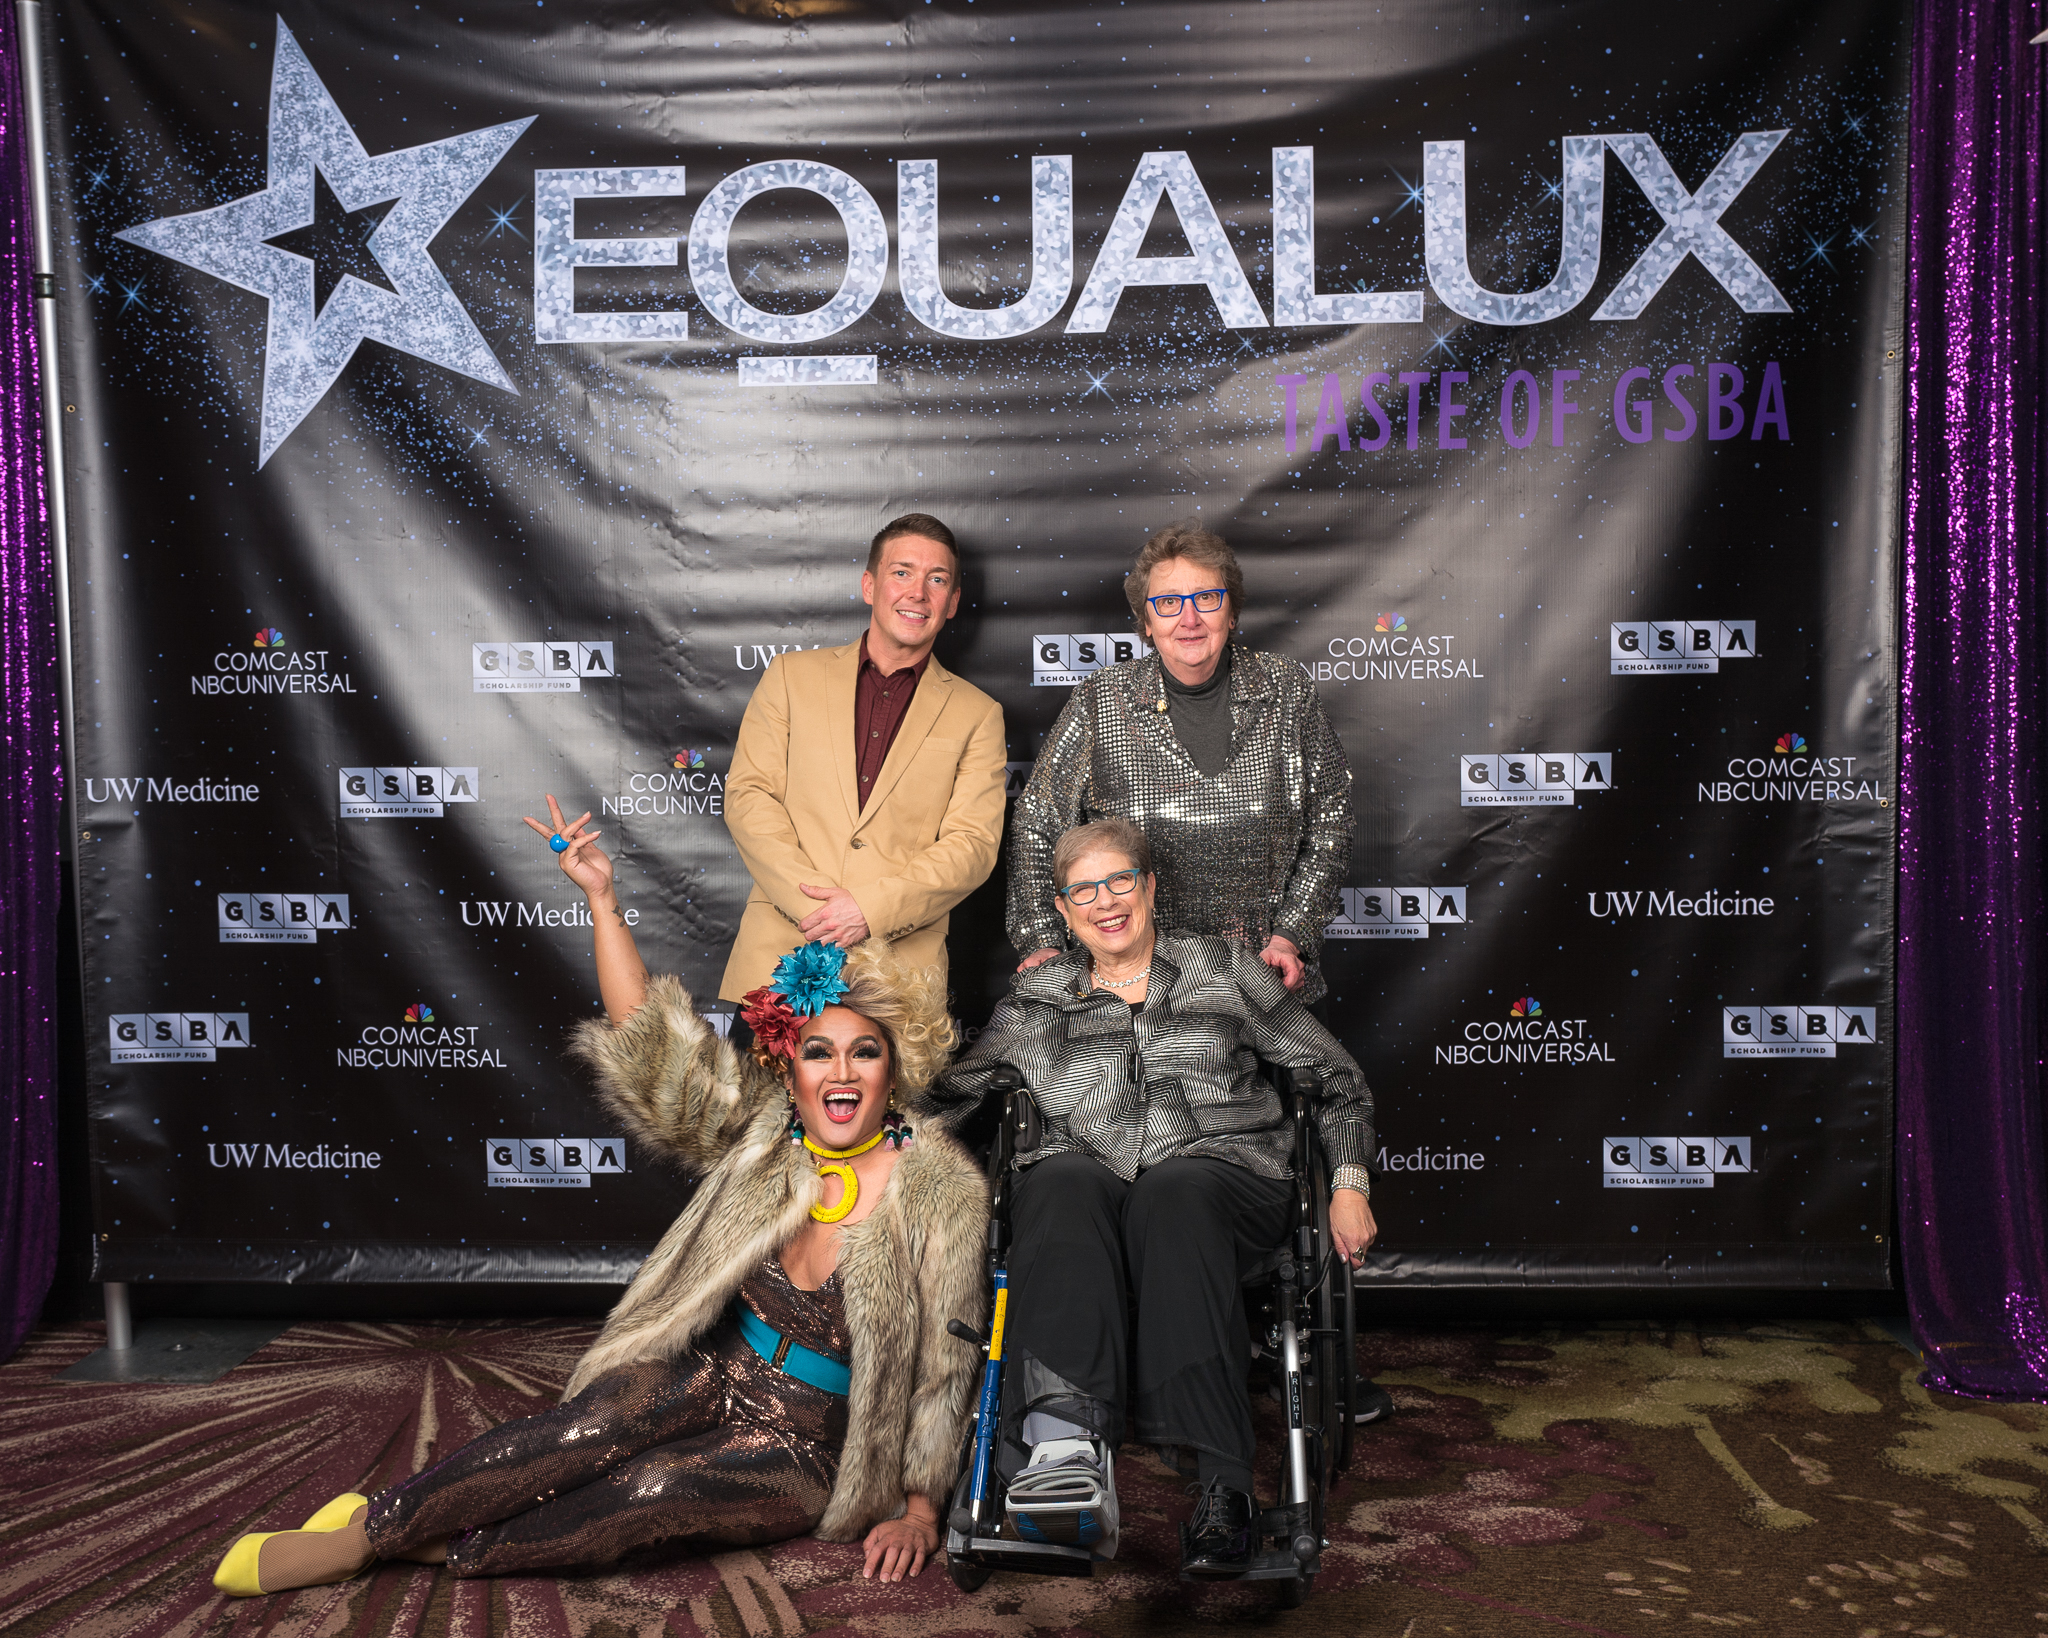 111718_GSBA EQUALUX at The Westin Seattle (Credit- Nate Gowdy)-10.jpg